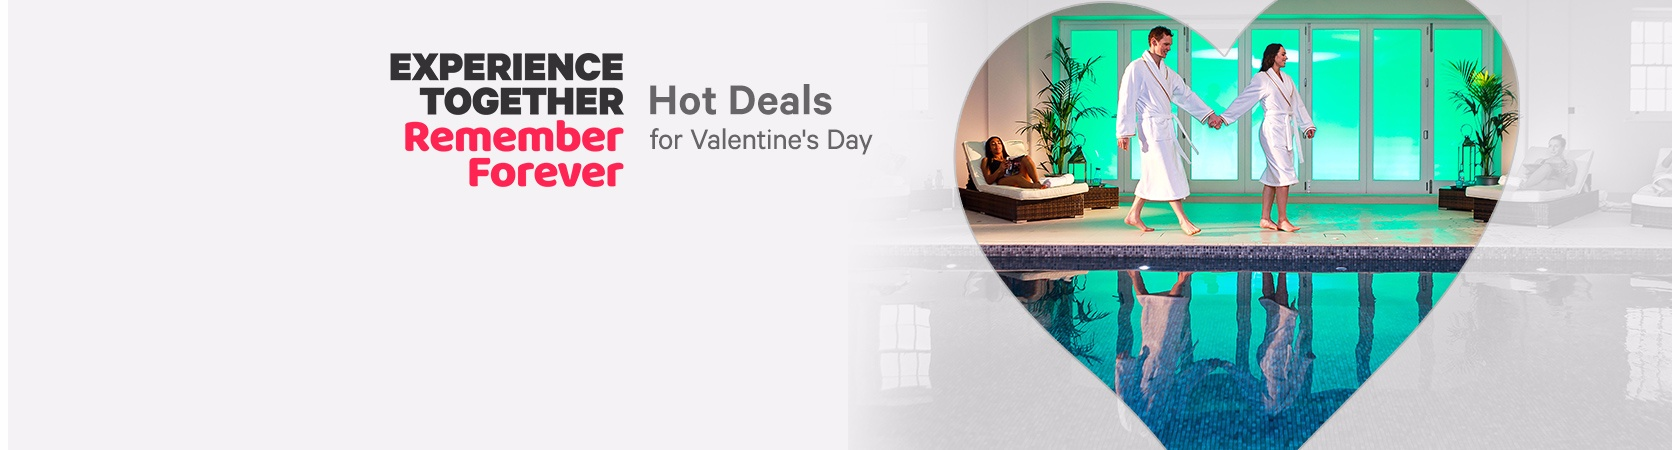 Valentines Day Hot Deals Groupon